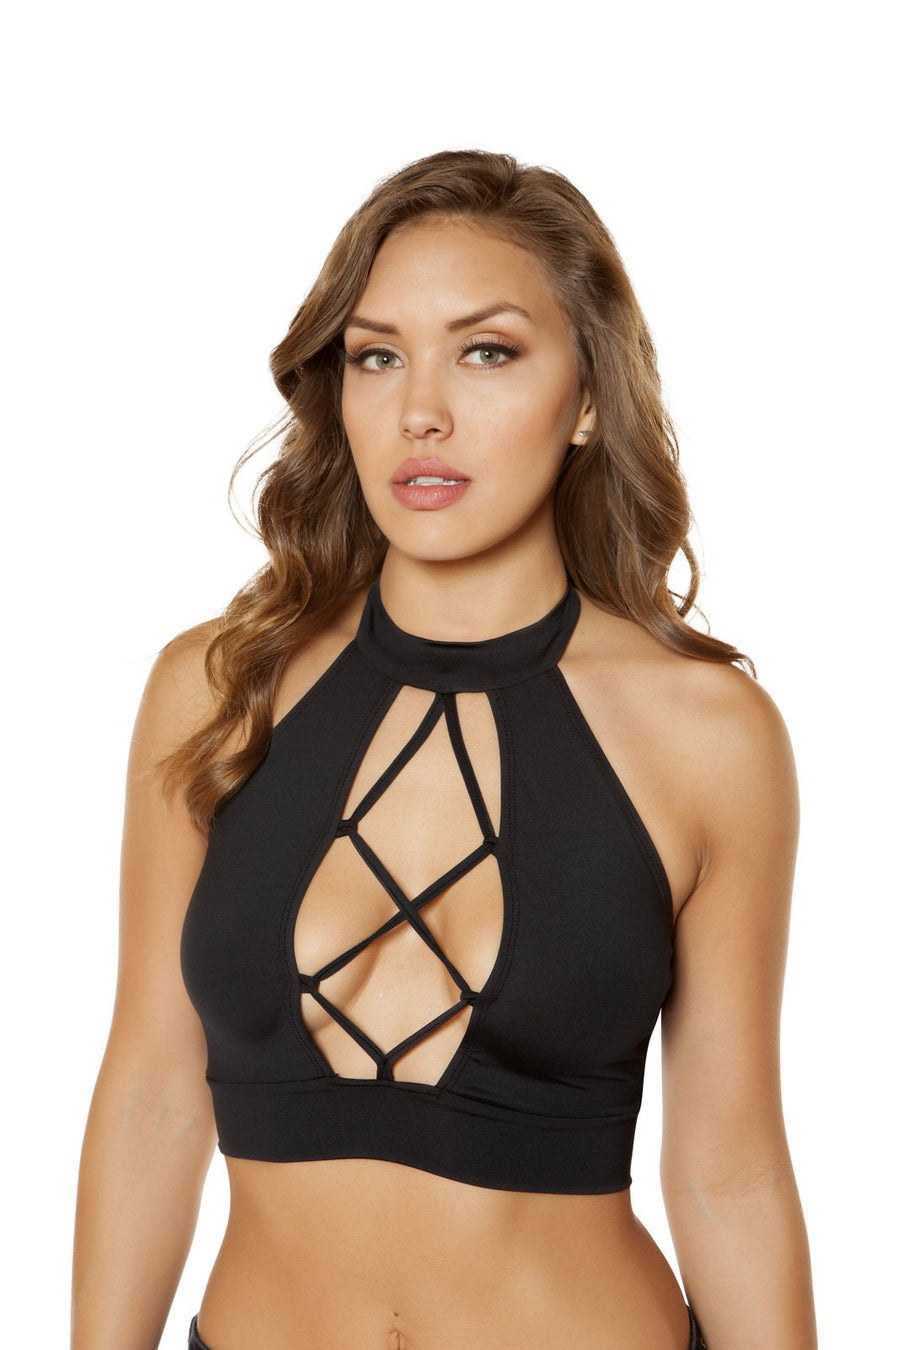 Strappy Lace-up Crop Top - Rave Party, Roma Costume, YourLamode